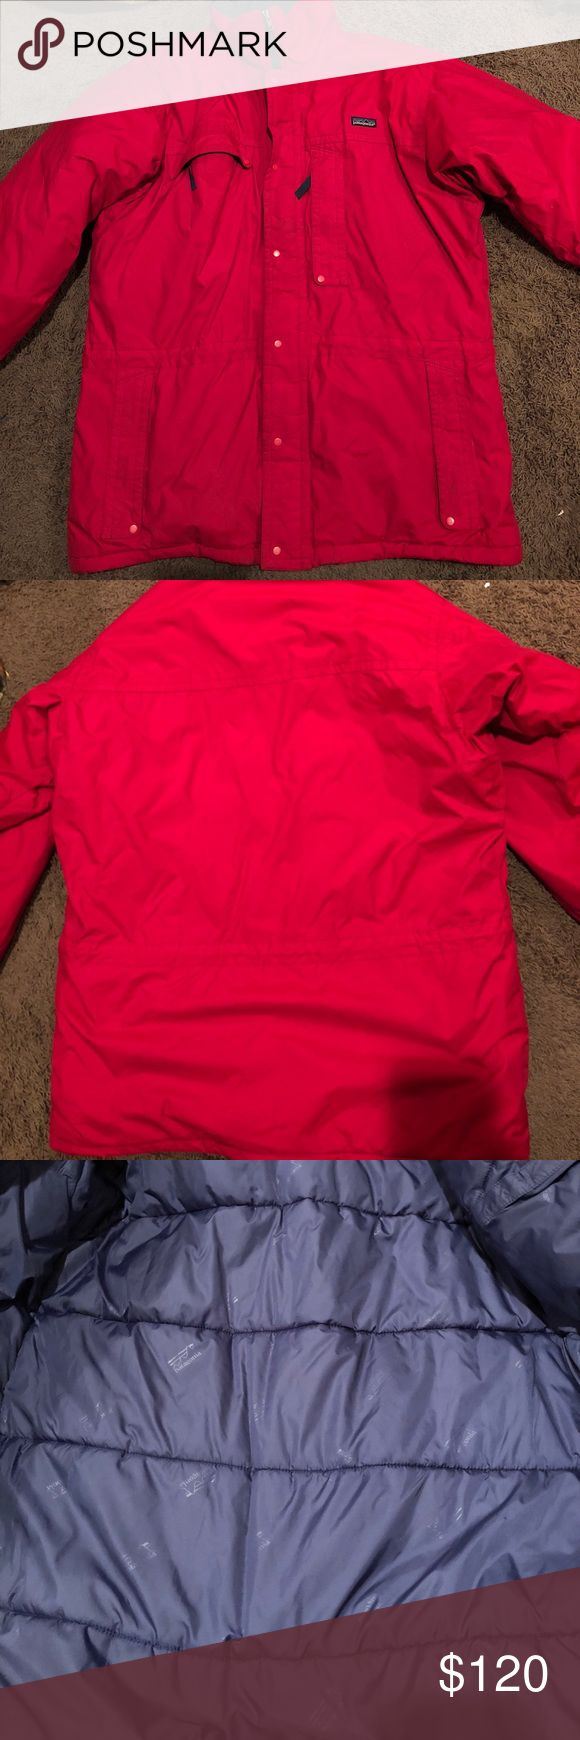 Men's Patagonia Puffer Ski Jacket Coat Size Large In overall great condition, some small marks on the sleeves at the bottom and throughout the coat. Lots of wear left. No rips or holes Patagonia Jackets & Coats Puffers